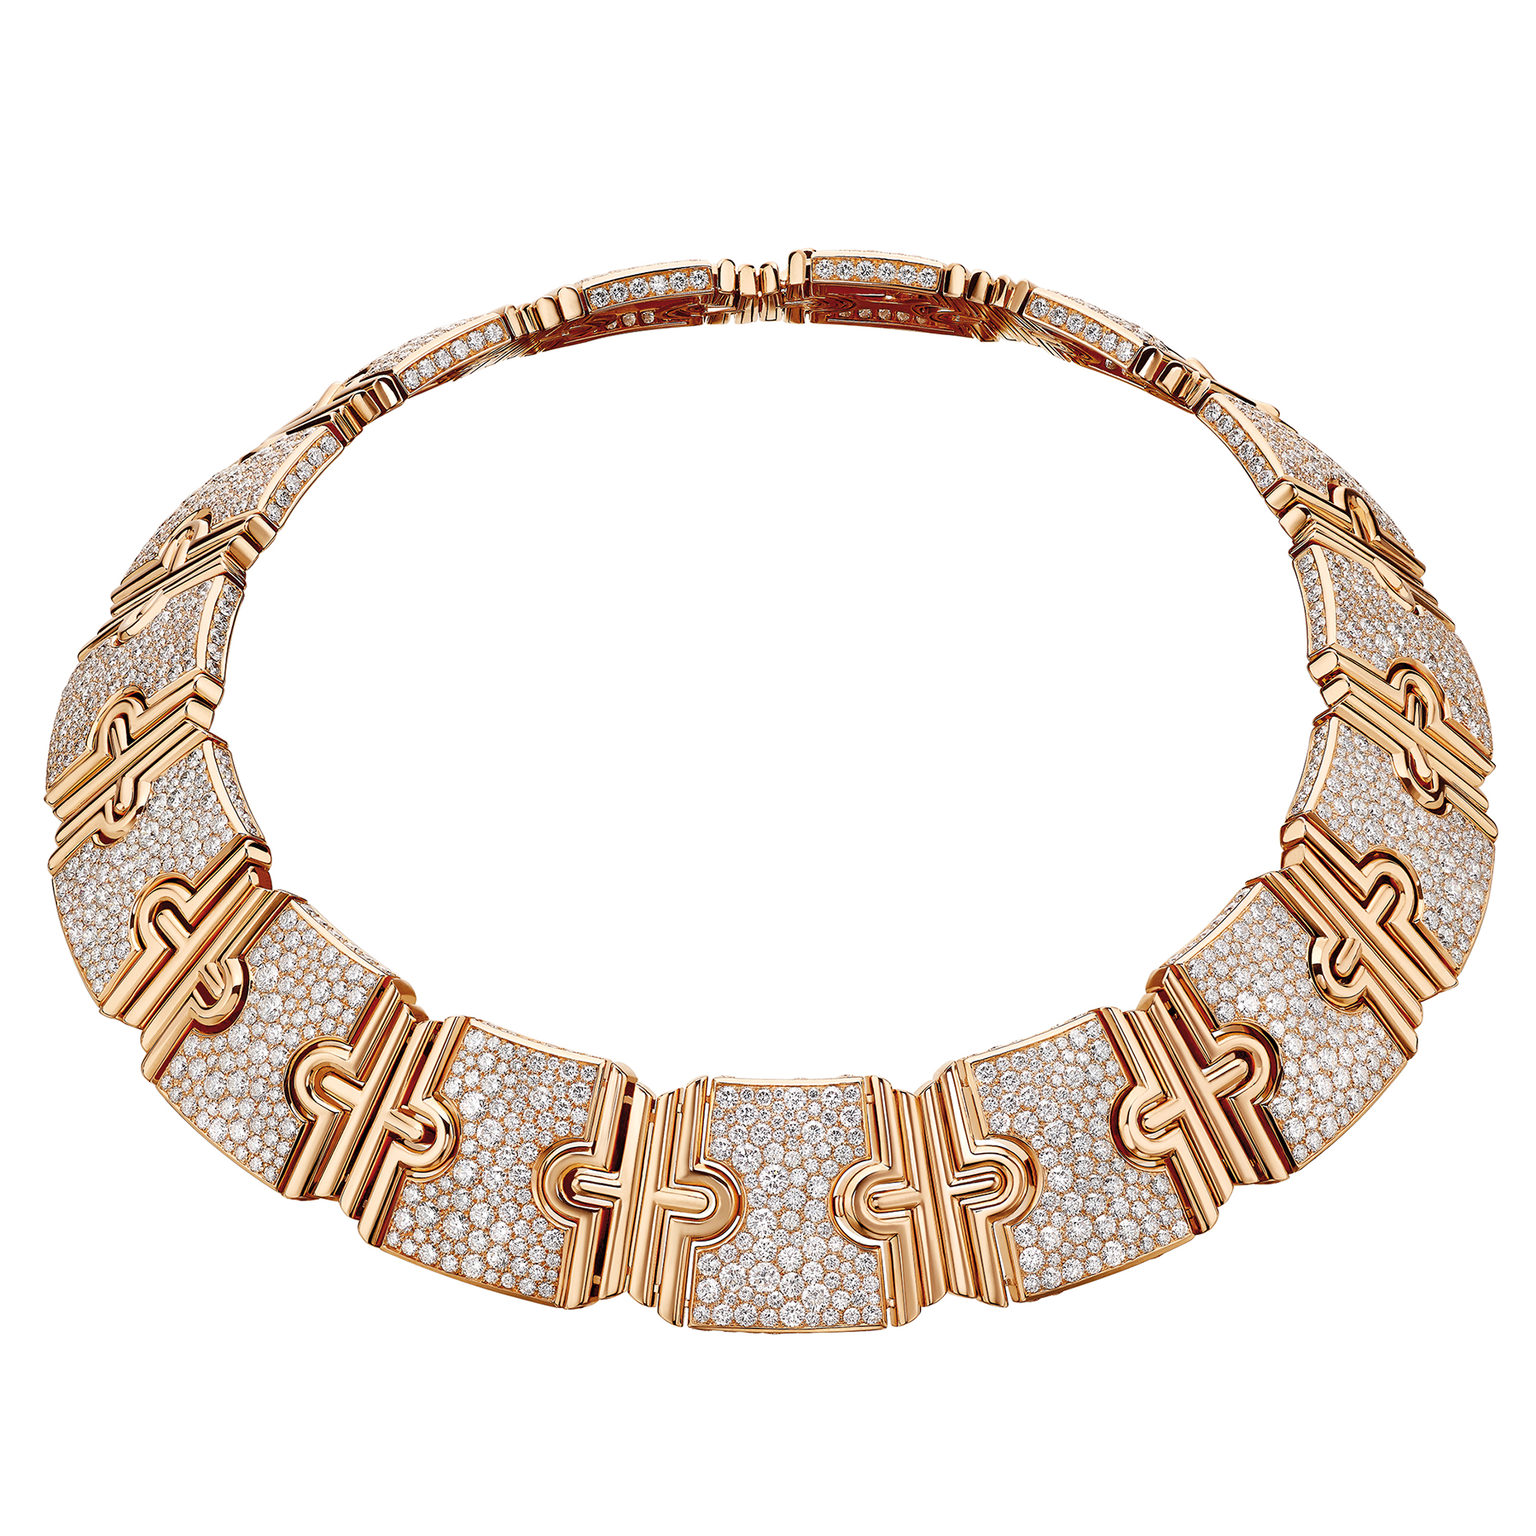 Bulgari Parentes gold necklace set with diamond pavé